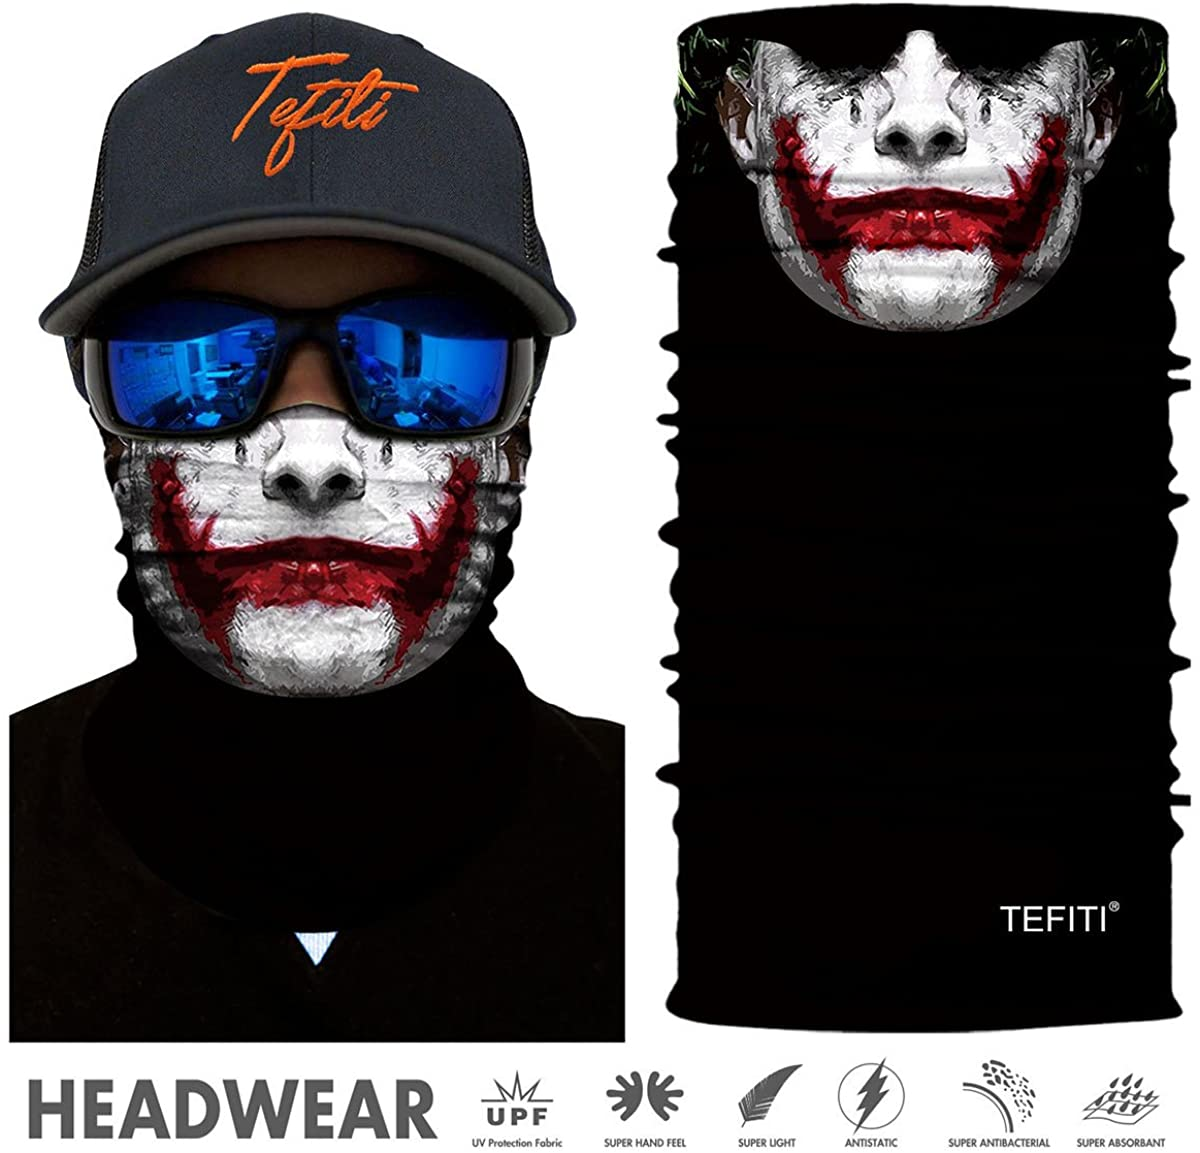 TEFITI Stretchable Face Scarf Guards Balaclava Headwear for Camping,Running,Cycling,Biking,Motorcycling,Fishing,Hunting,Yard Working and Sun UV Protection